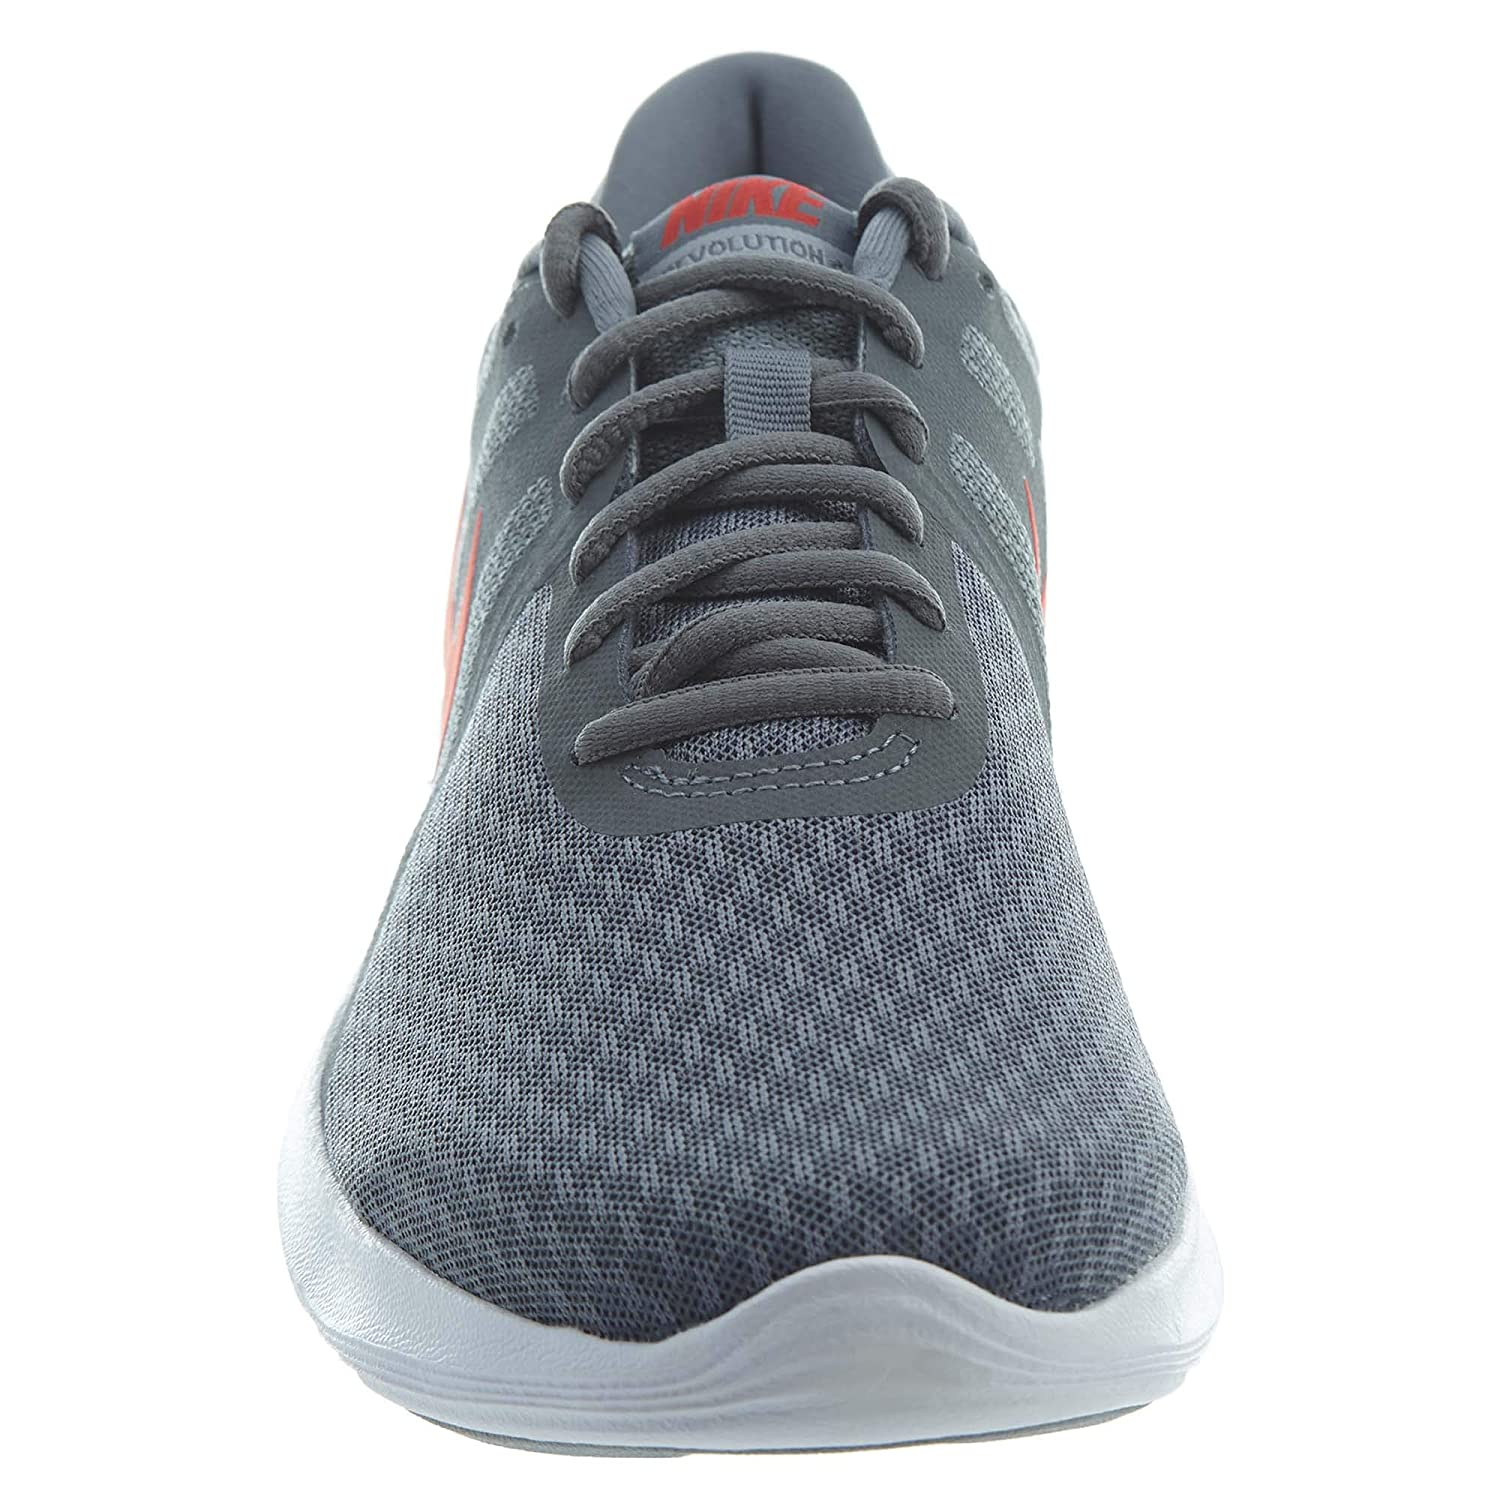 21e05ceb27a76 NIKE Men s Revolution 4 Cool Grey Habanero Red - Wolf Grey - White Running  Shoes 908988-013  Buy Online at Low Prices in India - Amazon.in